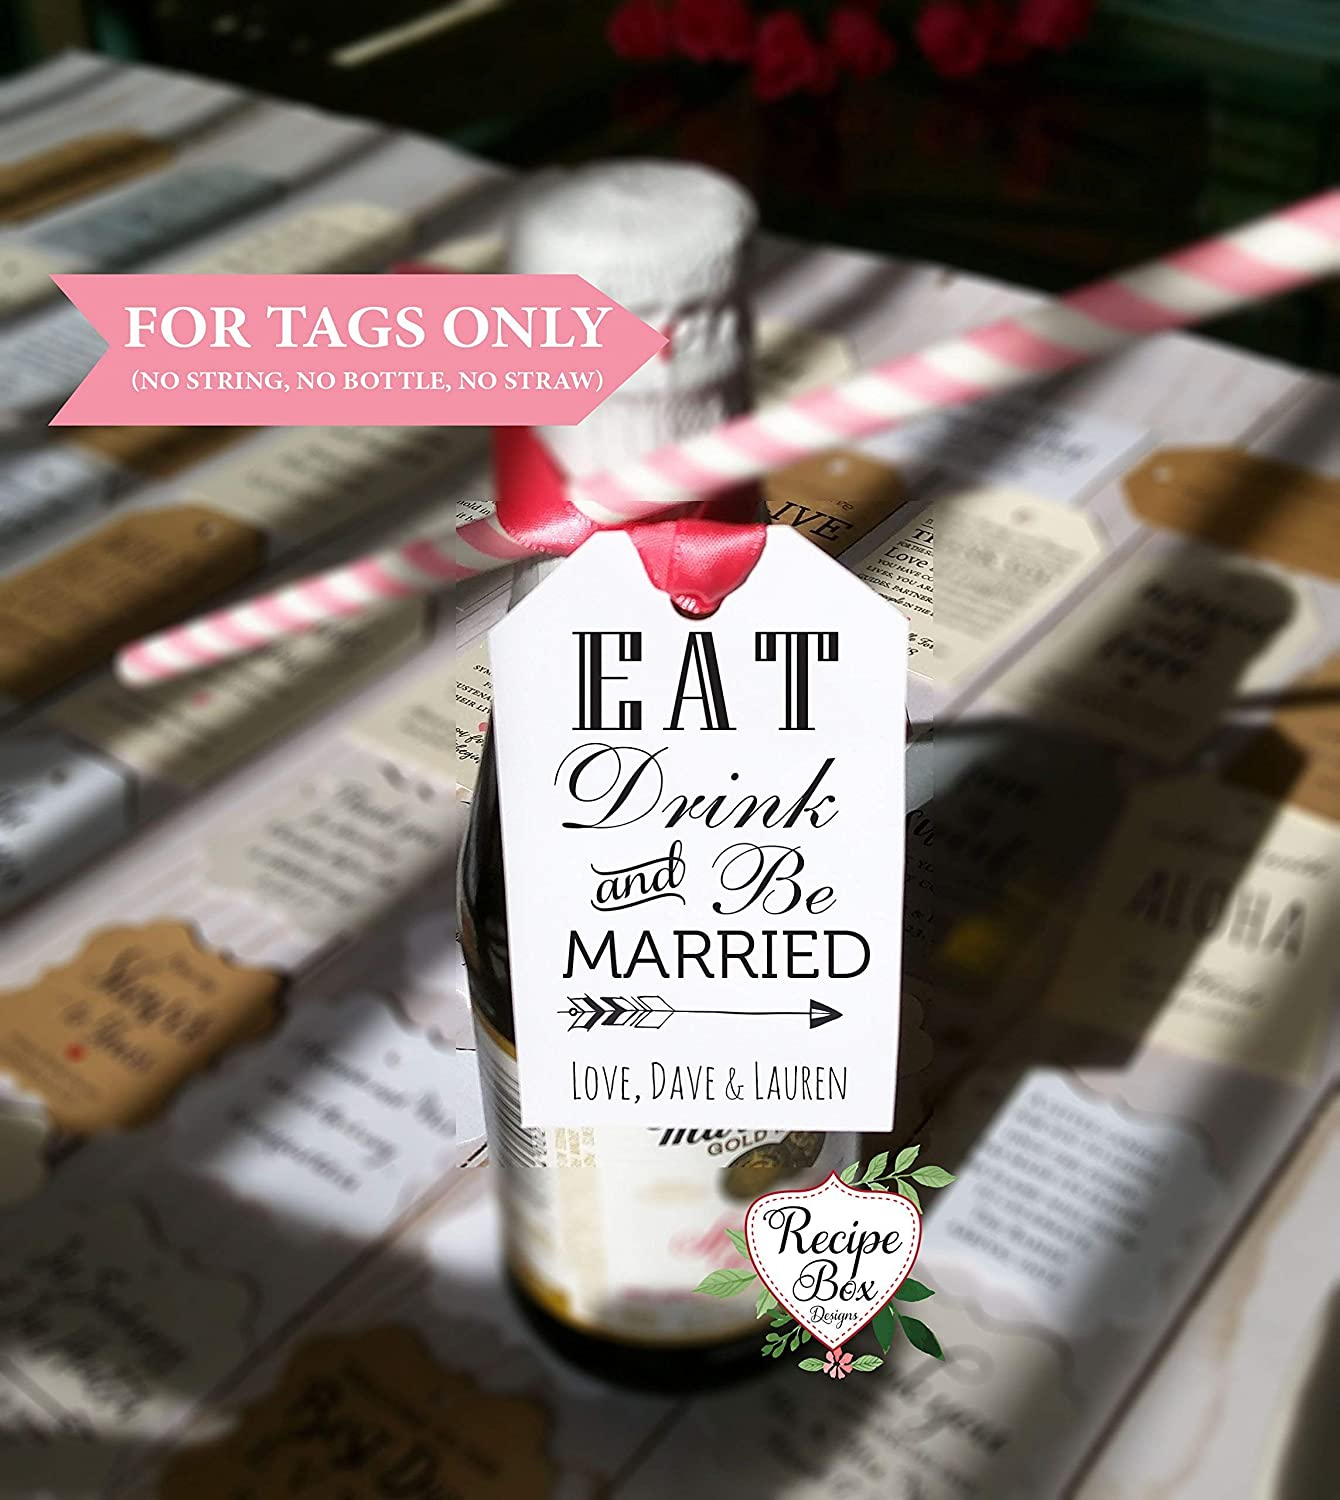 Champagne Bottle Tags Drink Be Married Thank you Gift Tags 15 Tags 2 x 3.5 inches Favor Tags No String, No Bottle Favor Tags Only Eat